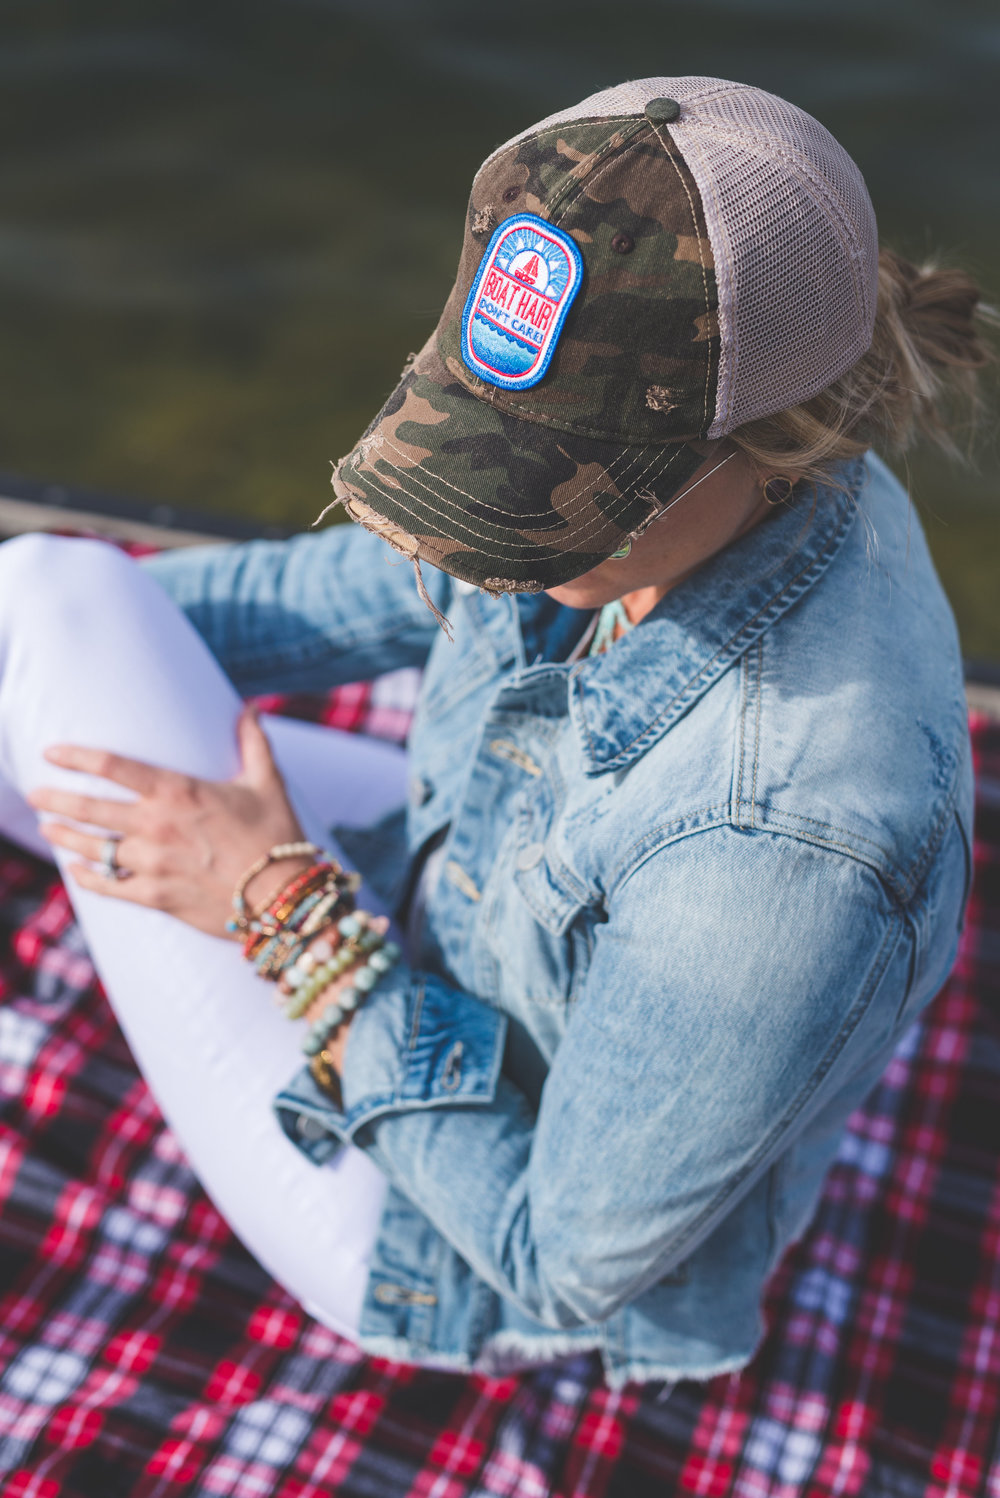 hat  here  // Jacket  here  // denim  here  or  here  // tank  here  or here // shoes  here  // jewelry  here  or  here